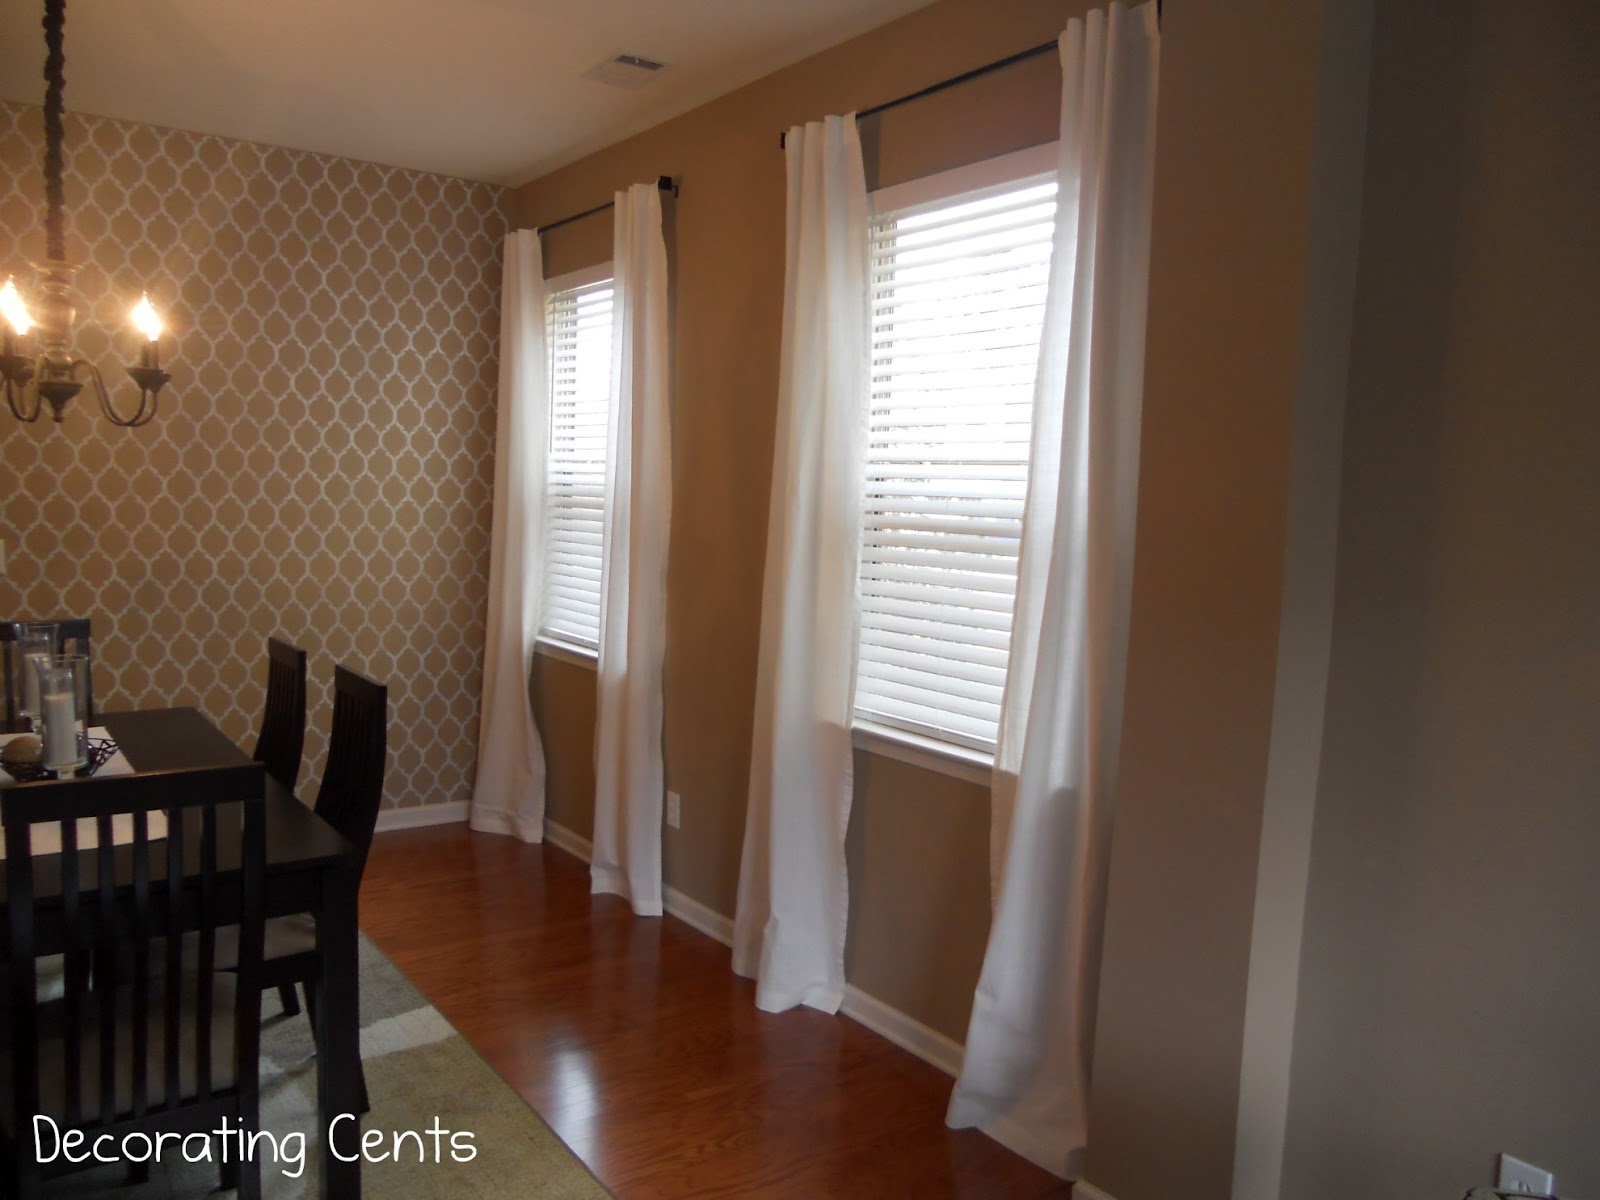 Decorating cents dining room curtains for Dining room drapes